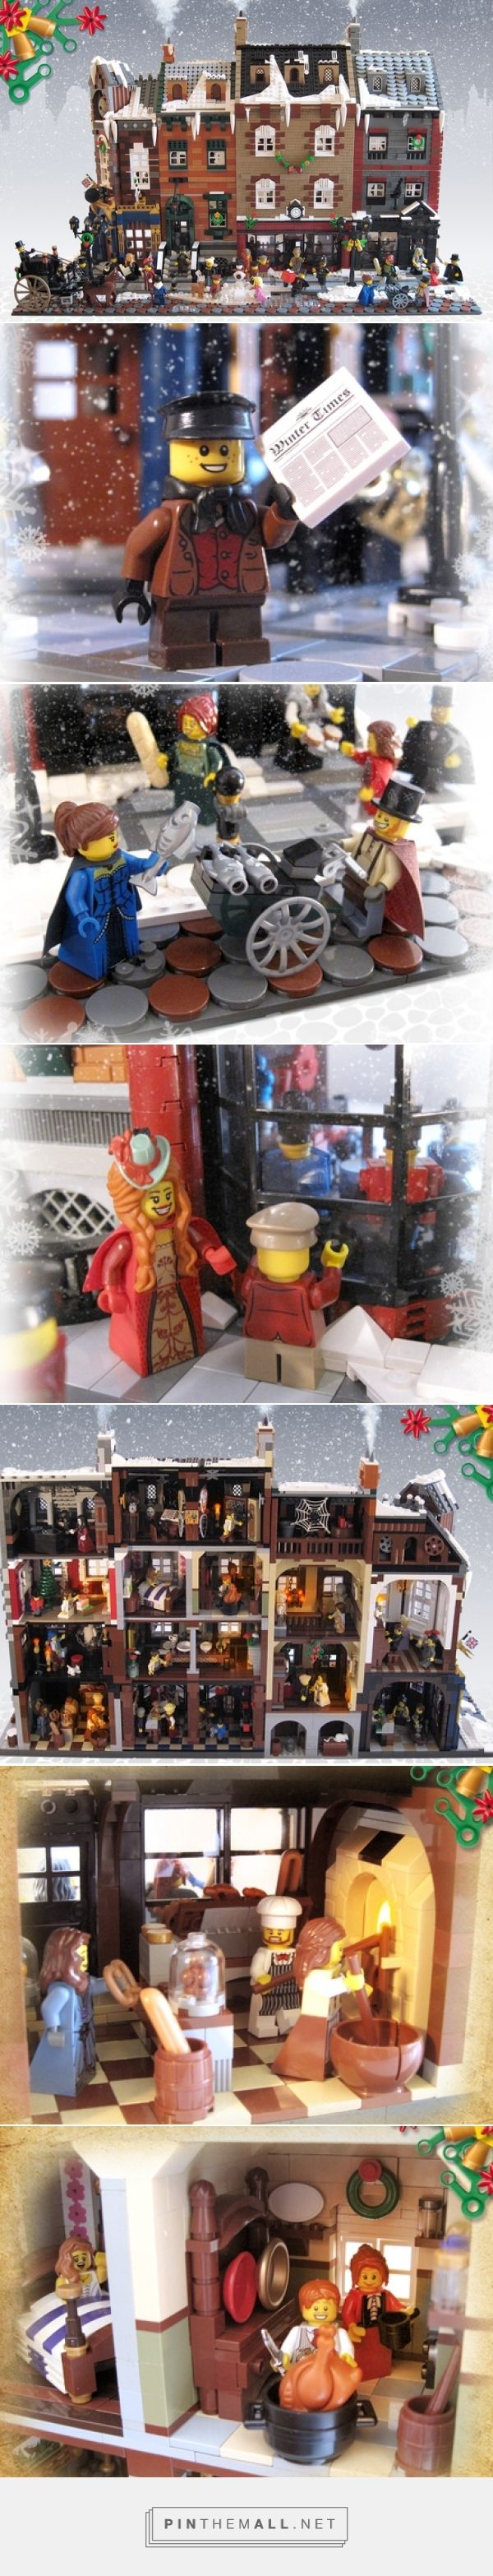 LEGO Ideas -      Victorian London Christmas - created via http://pinthemall.net